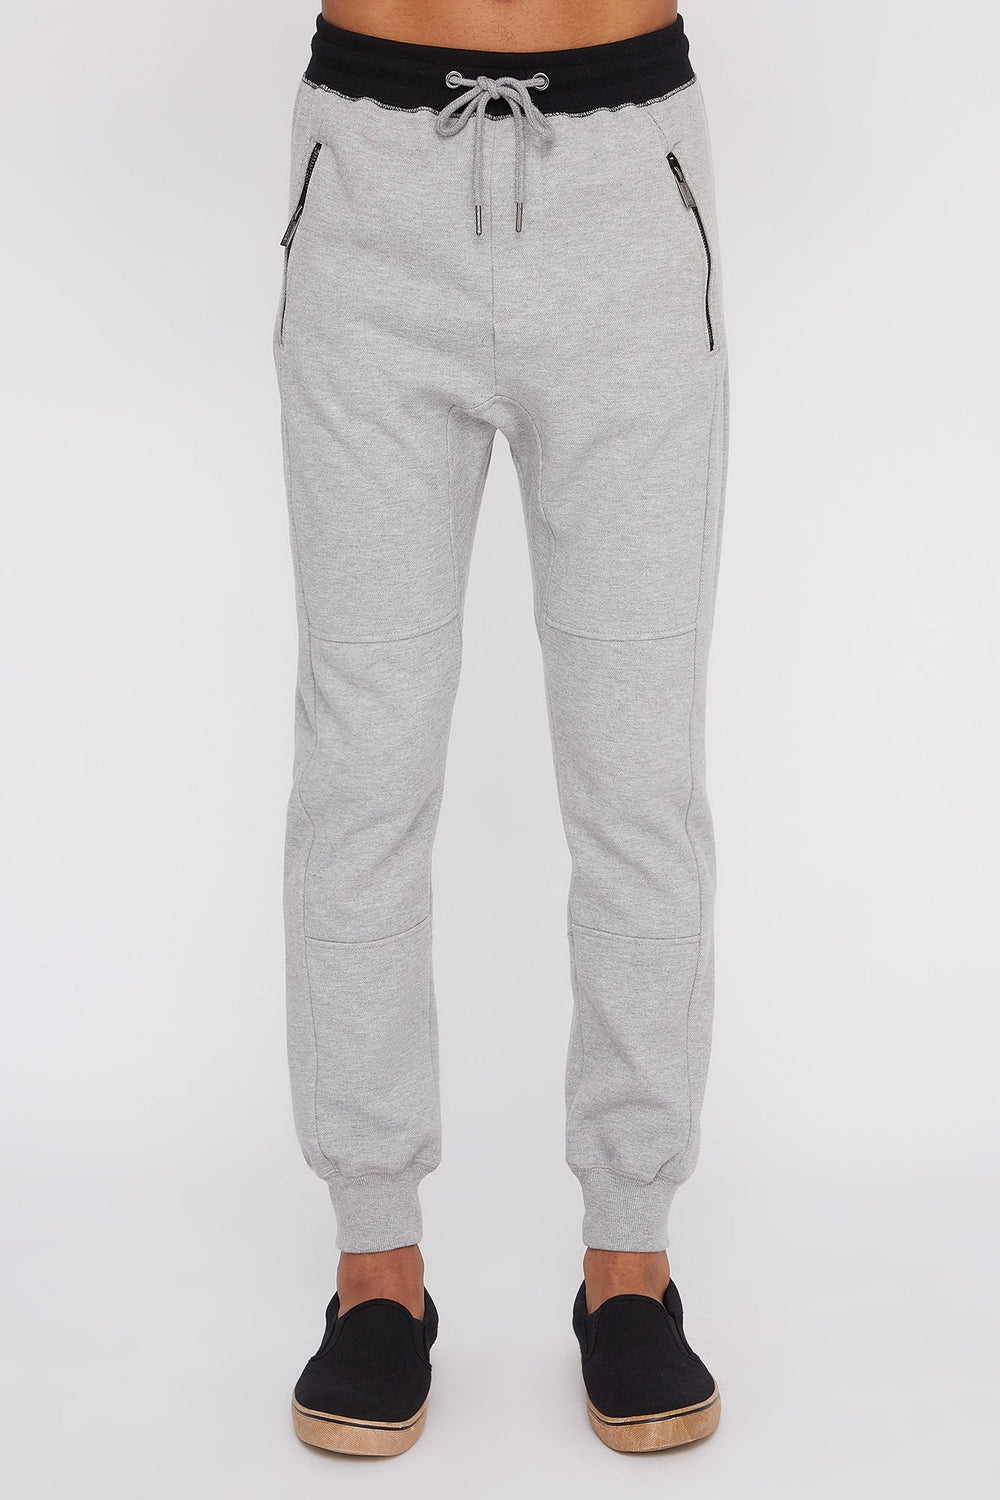 West49 Mens Textured Zip-Up Jogger Heather Grey